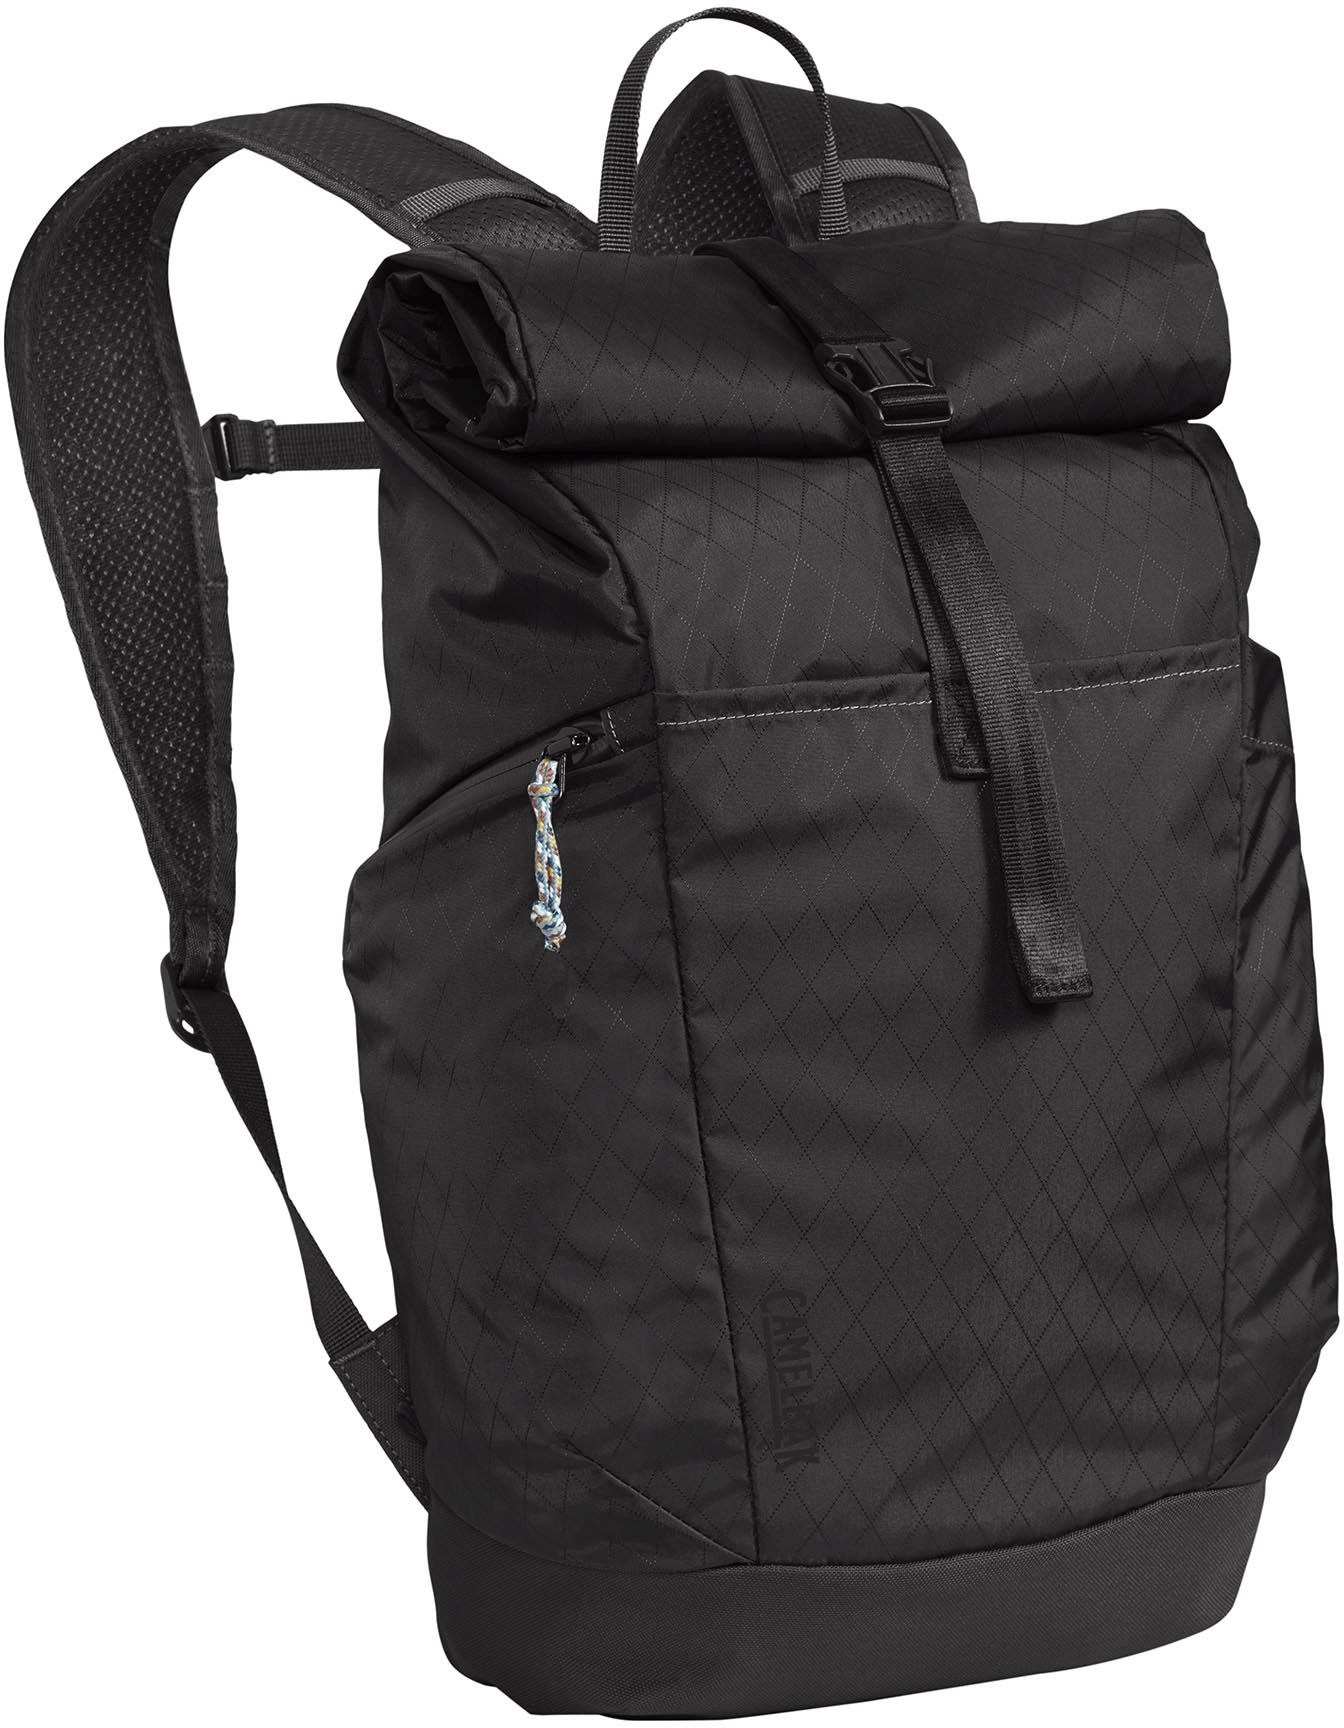 Camelbak Pivot Roll Top Pack - Black uni